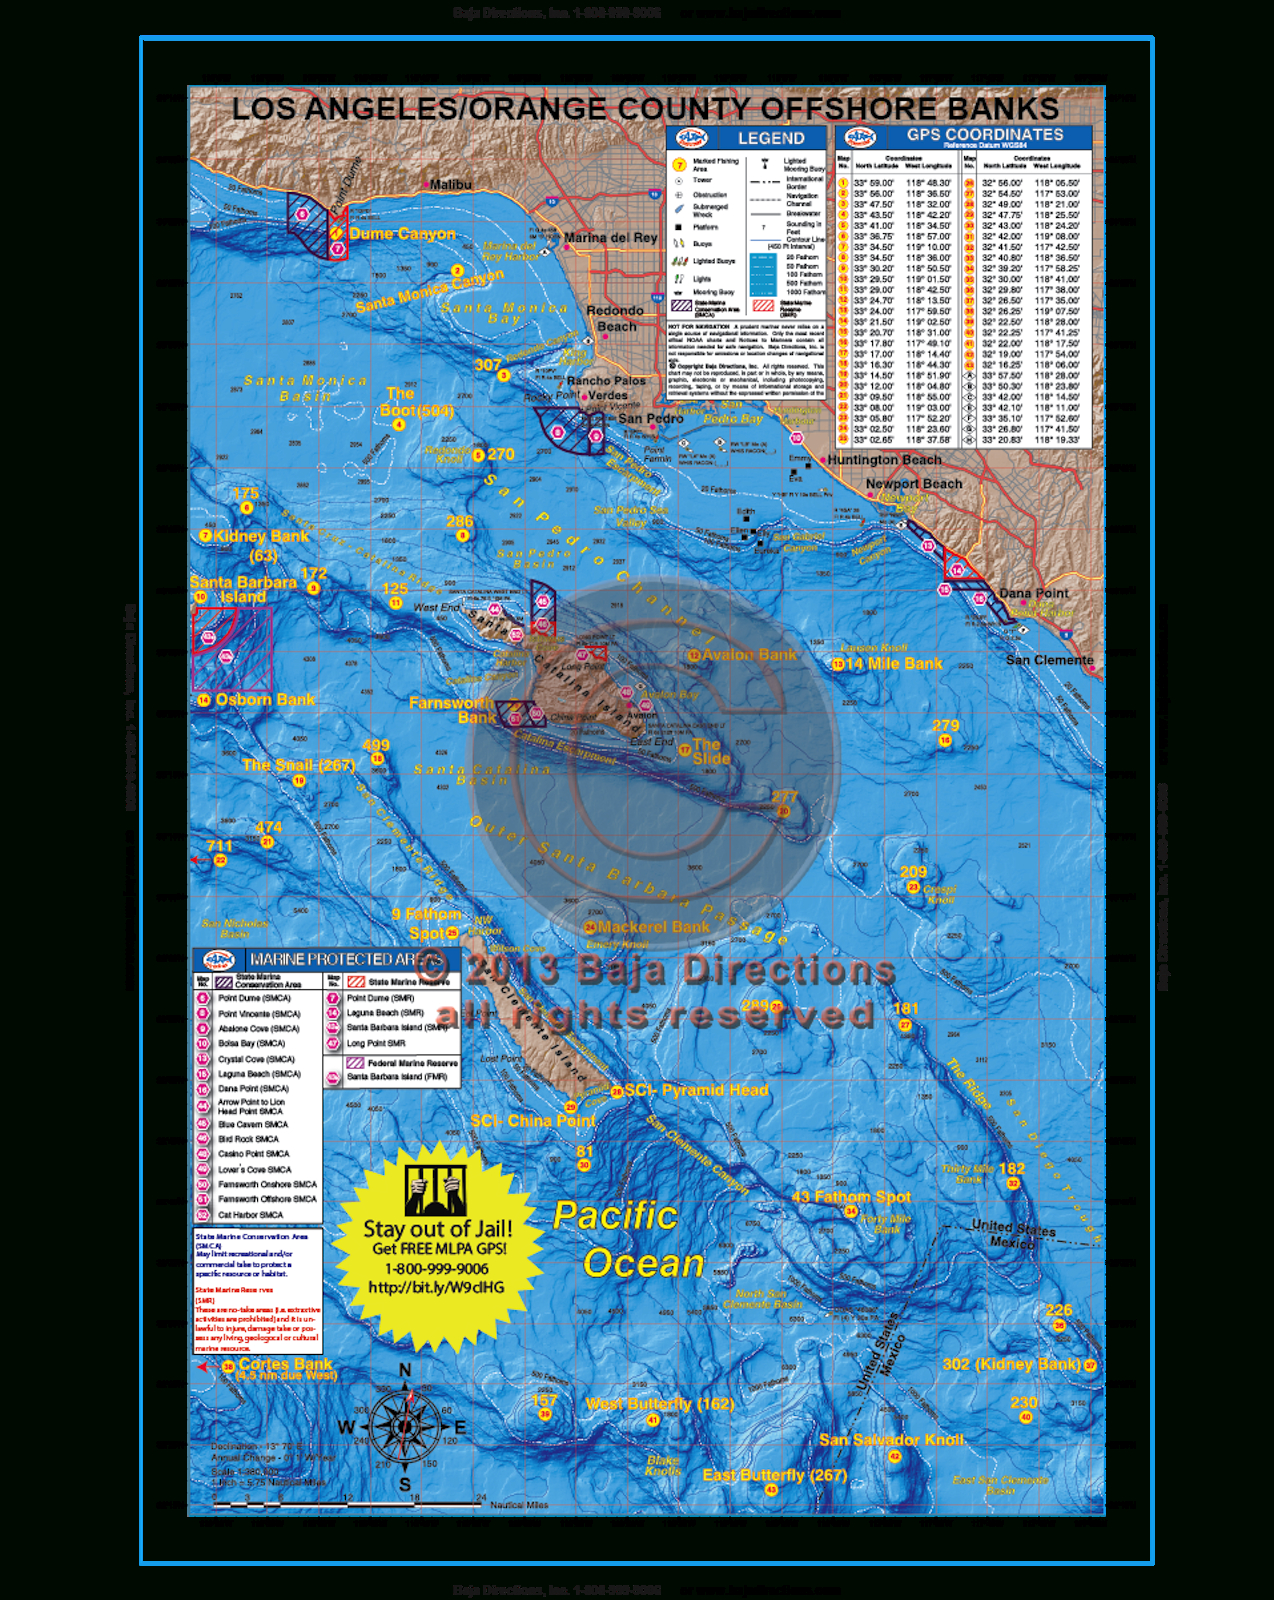 La / Orange County Offshore Banks - Baja Directions - Southern California Ocean Fishing Maps